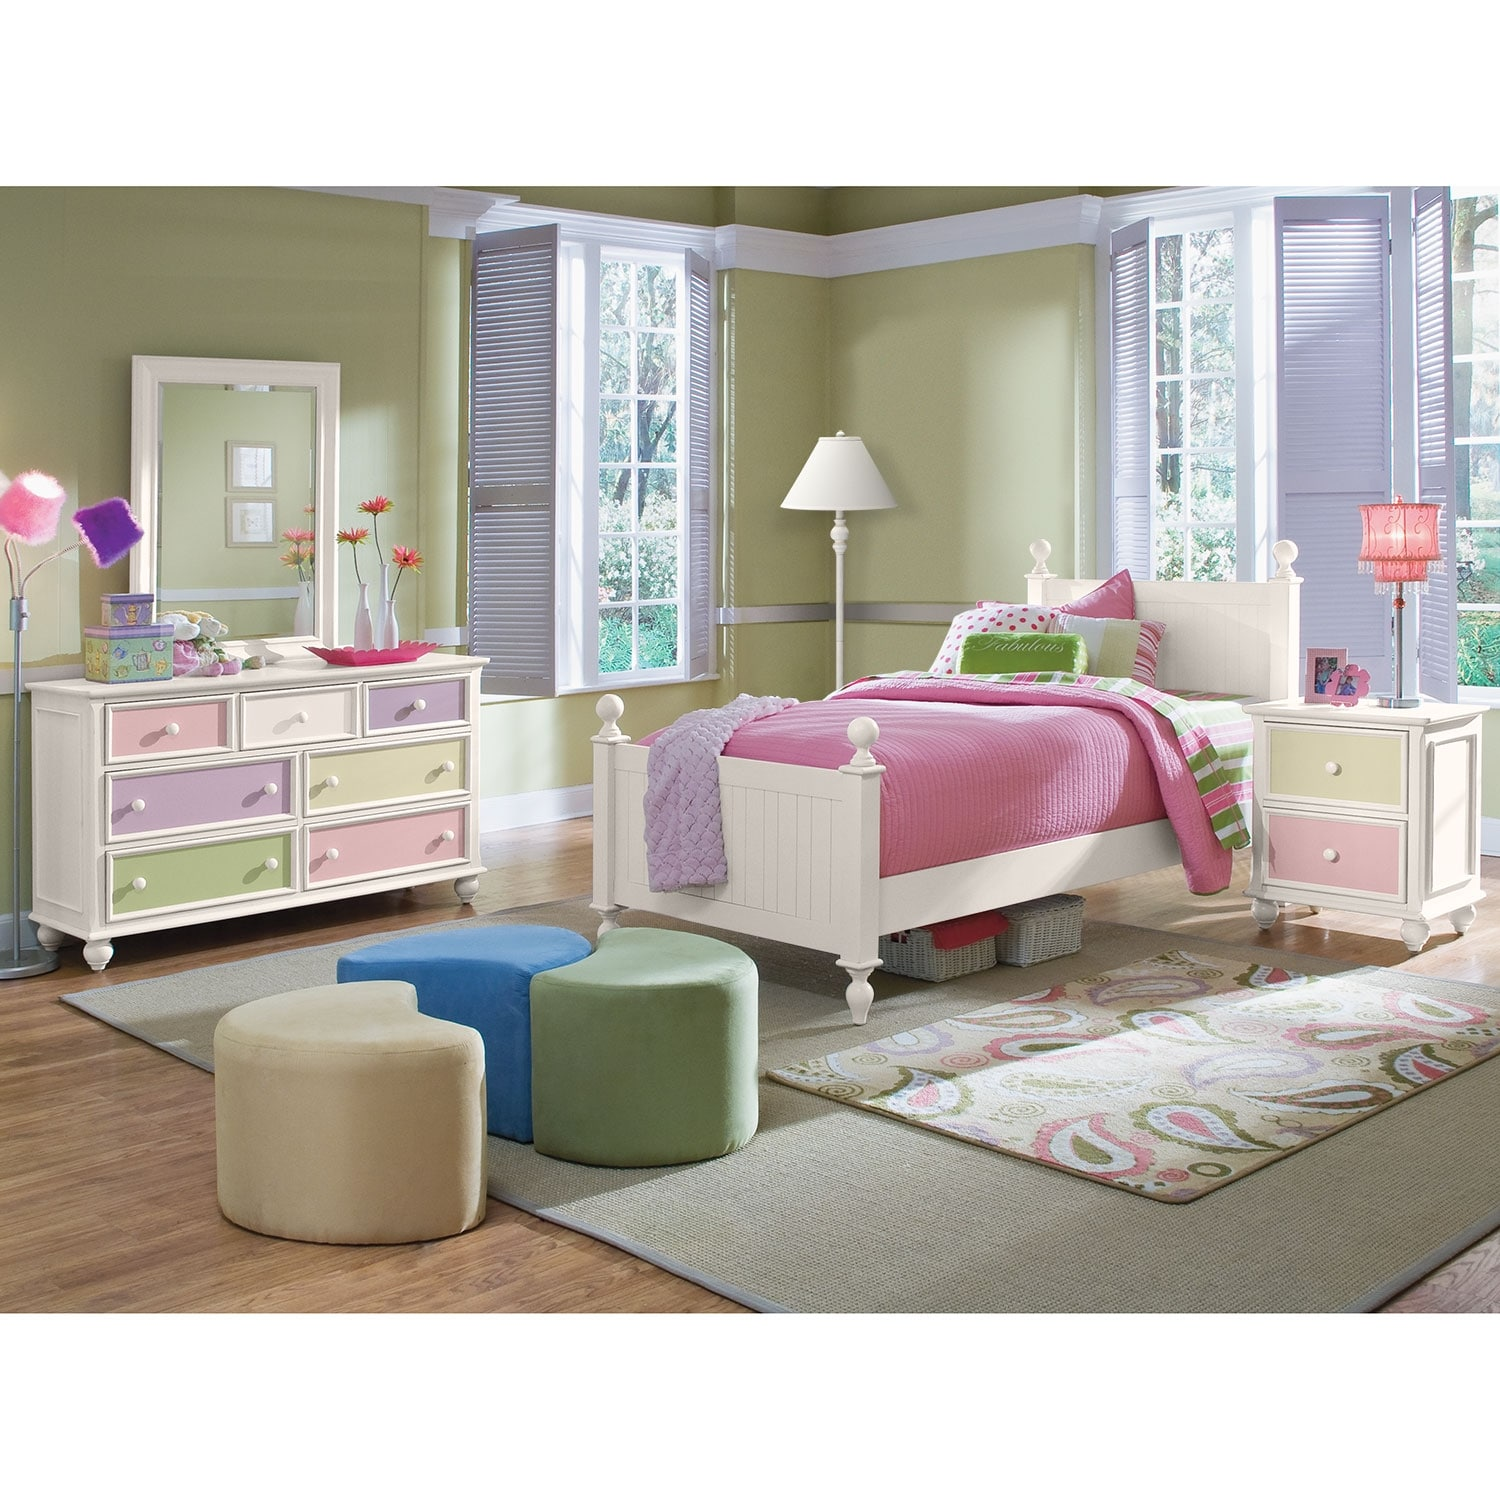 Kids Furniture - Colorworks 6-Piece Bedroom Set with Nightstand, Dresser and Mirror